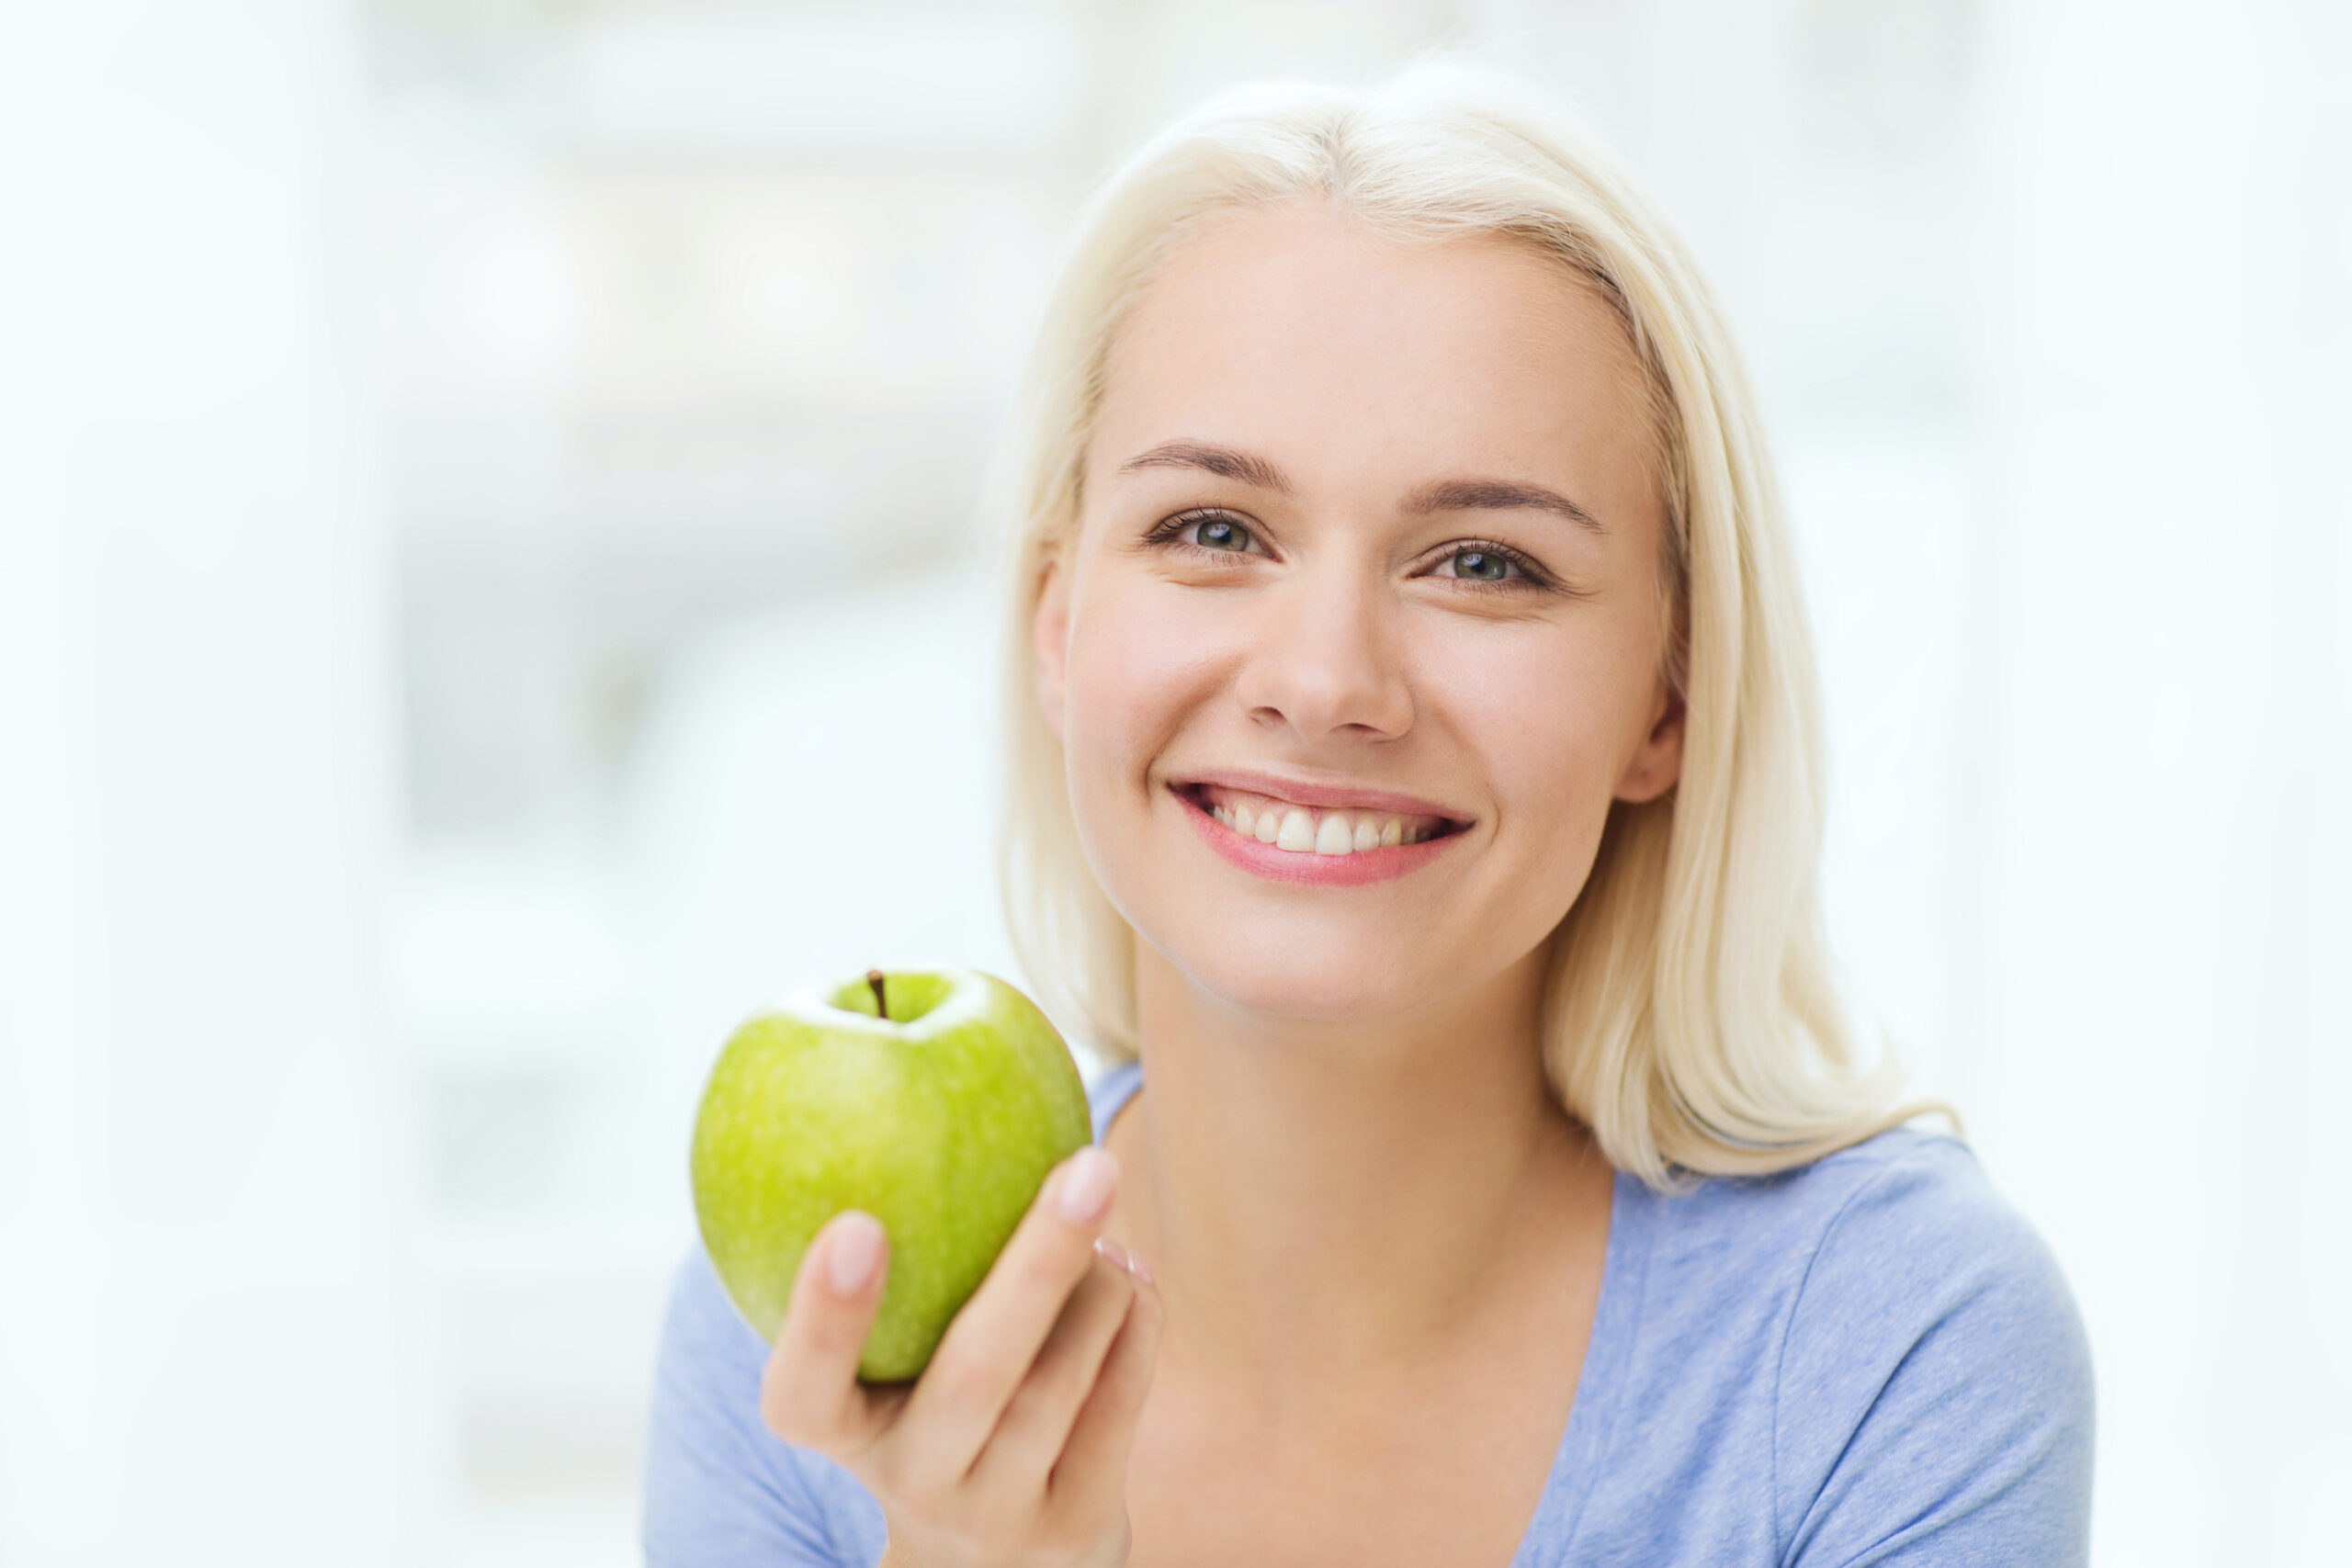 healthy eating, organic food, fruits, diet and people concept - happy woman eating green apple at home